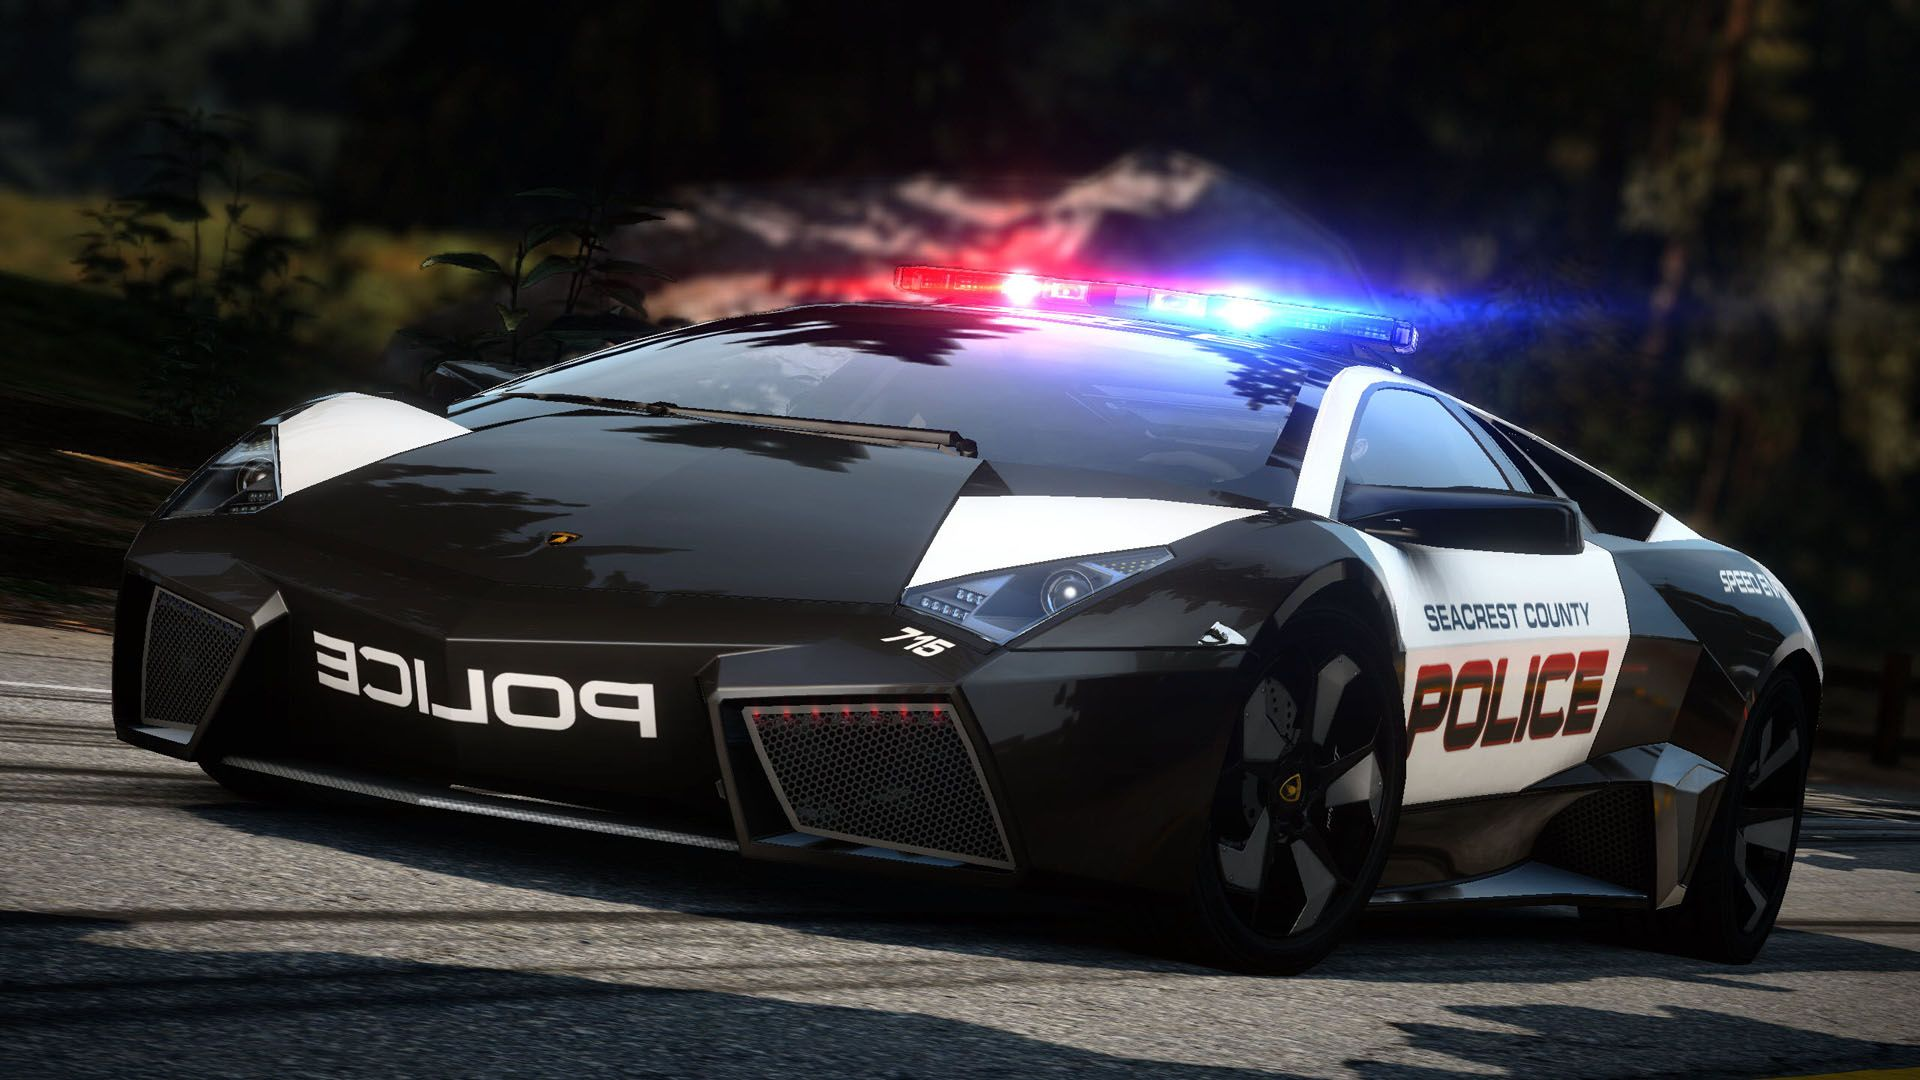 wallpaper police car speed wallpapers - http://69hdwallpapers